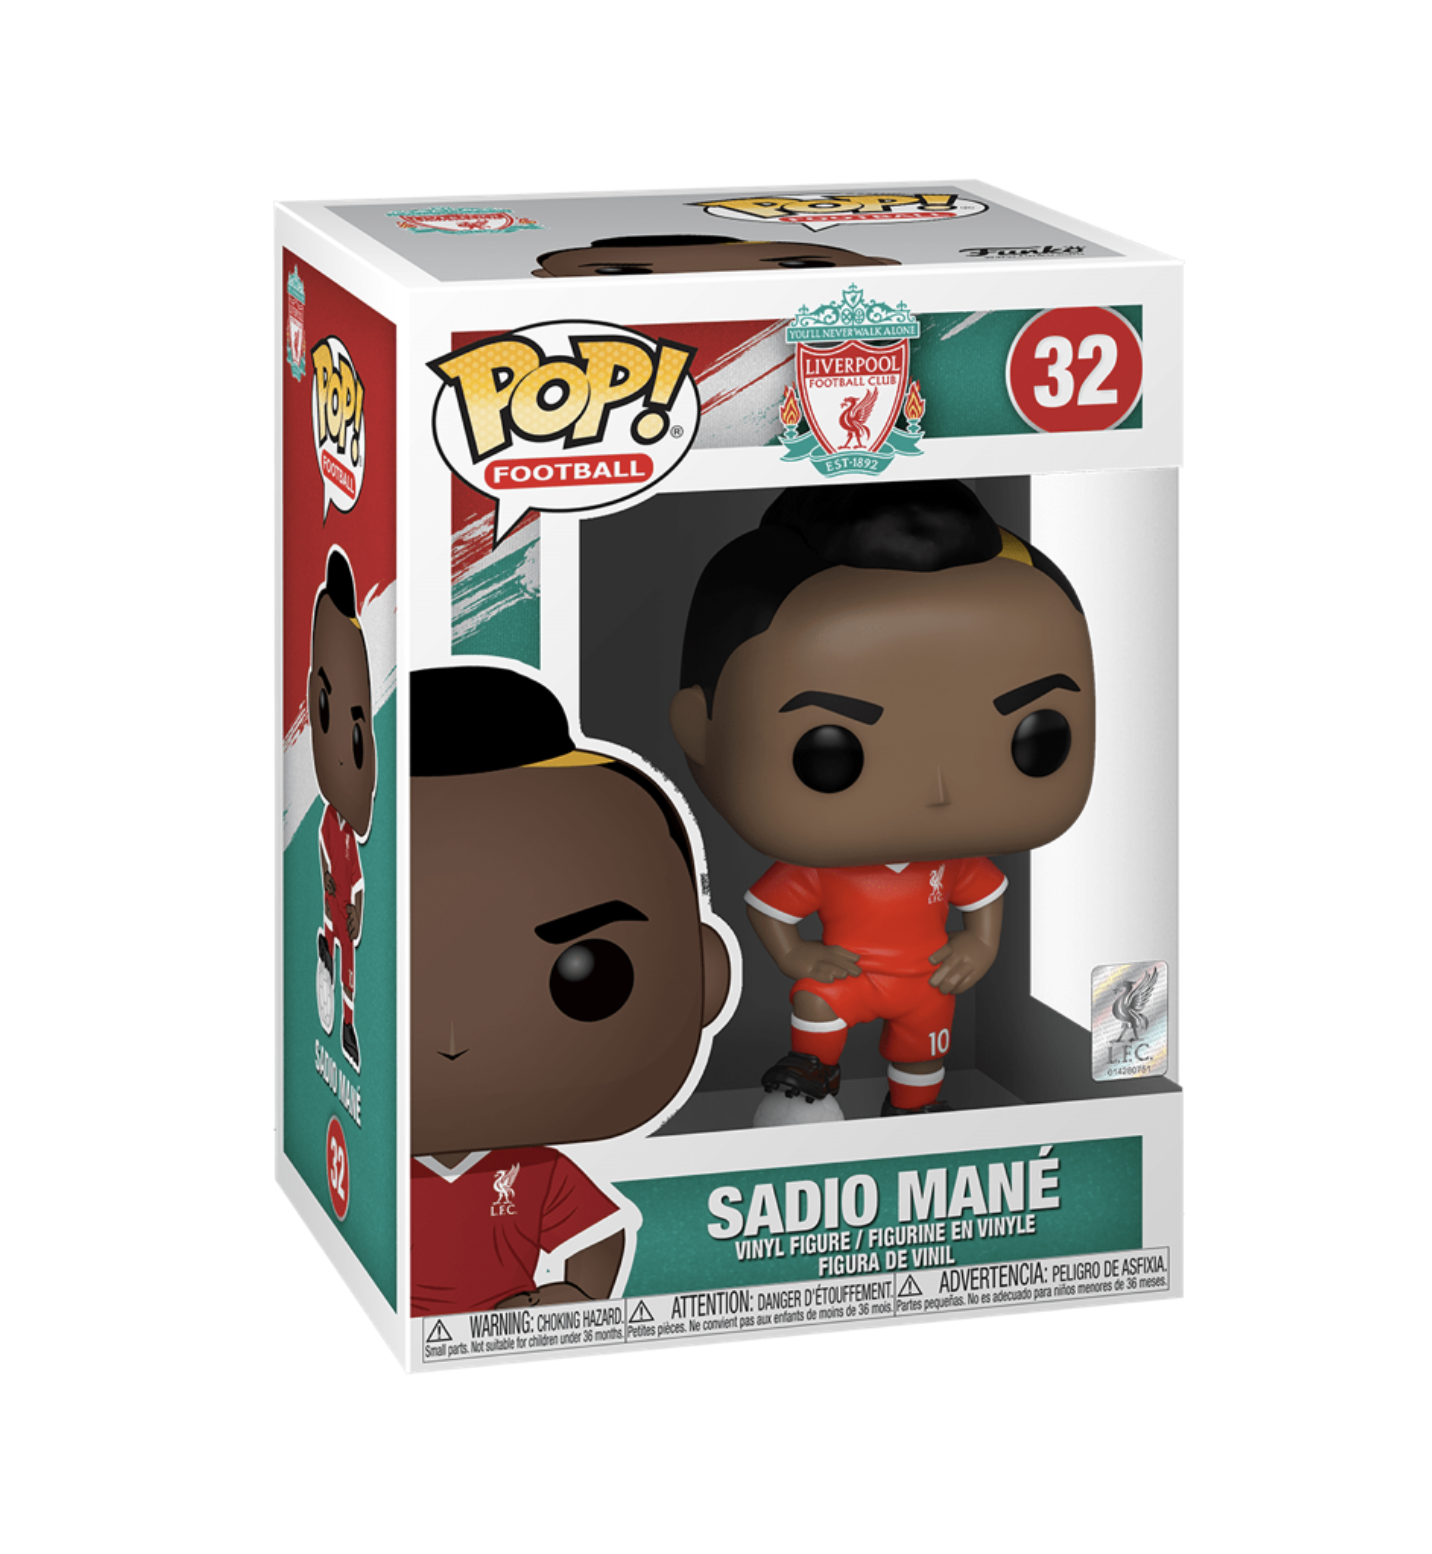 Football Pop! Vinyl Figure Liverpool FC 2020 Sadio Mane